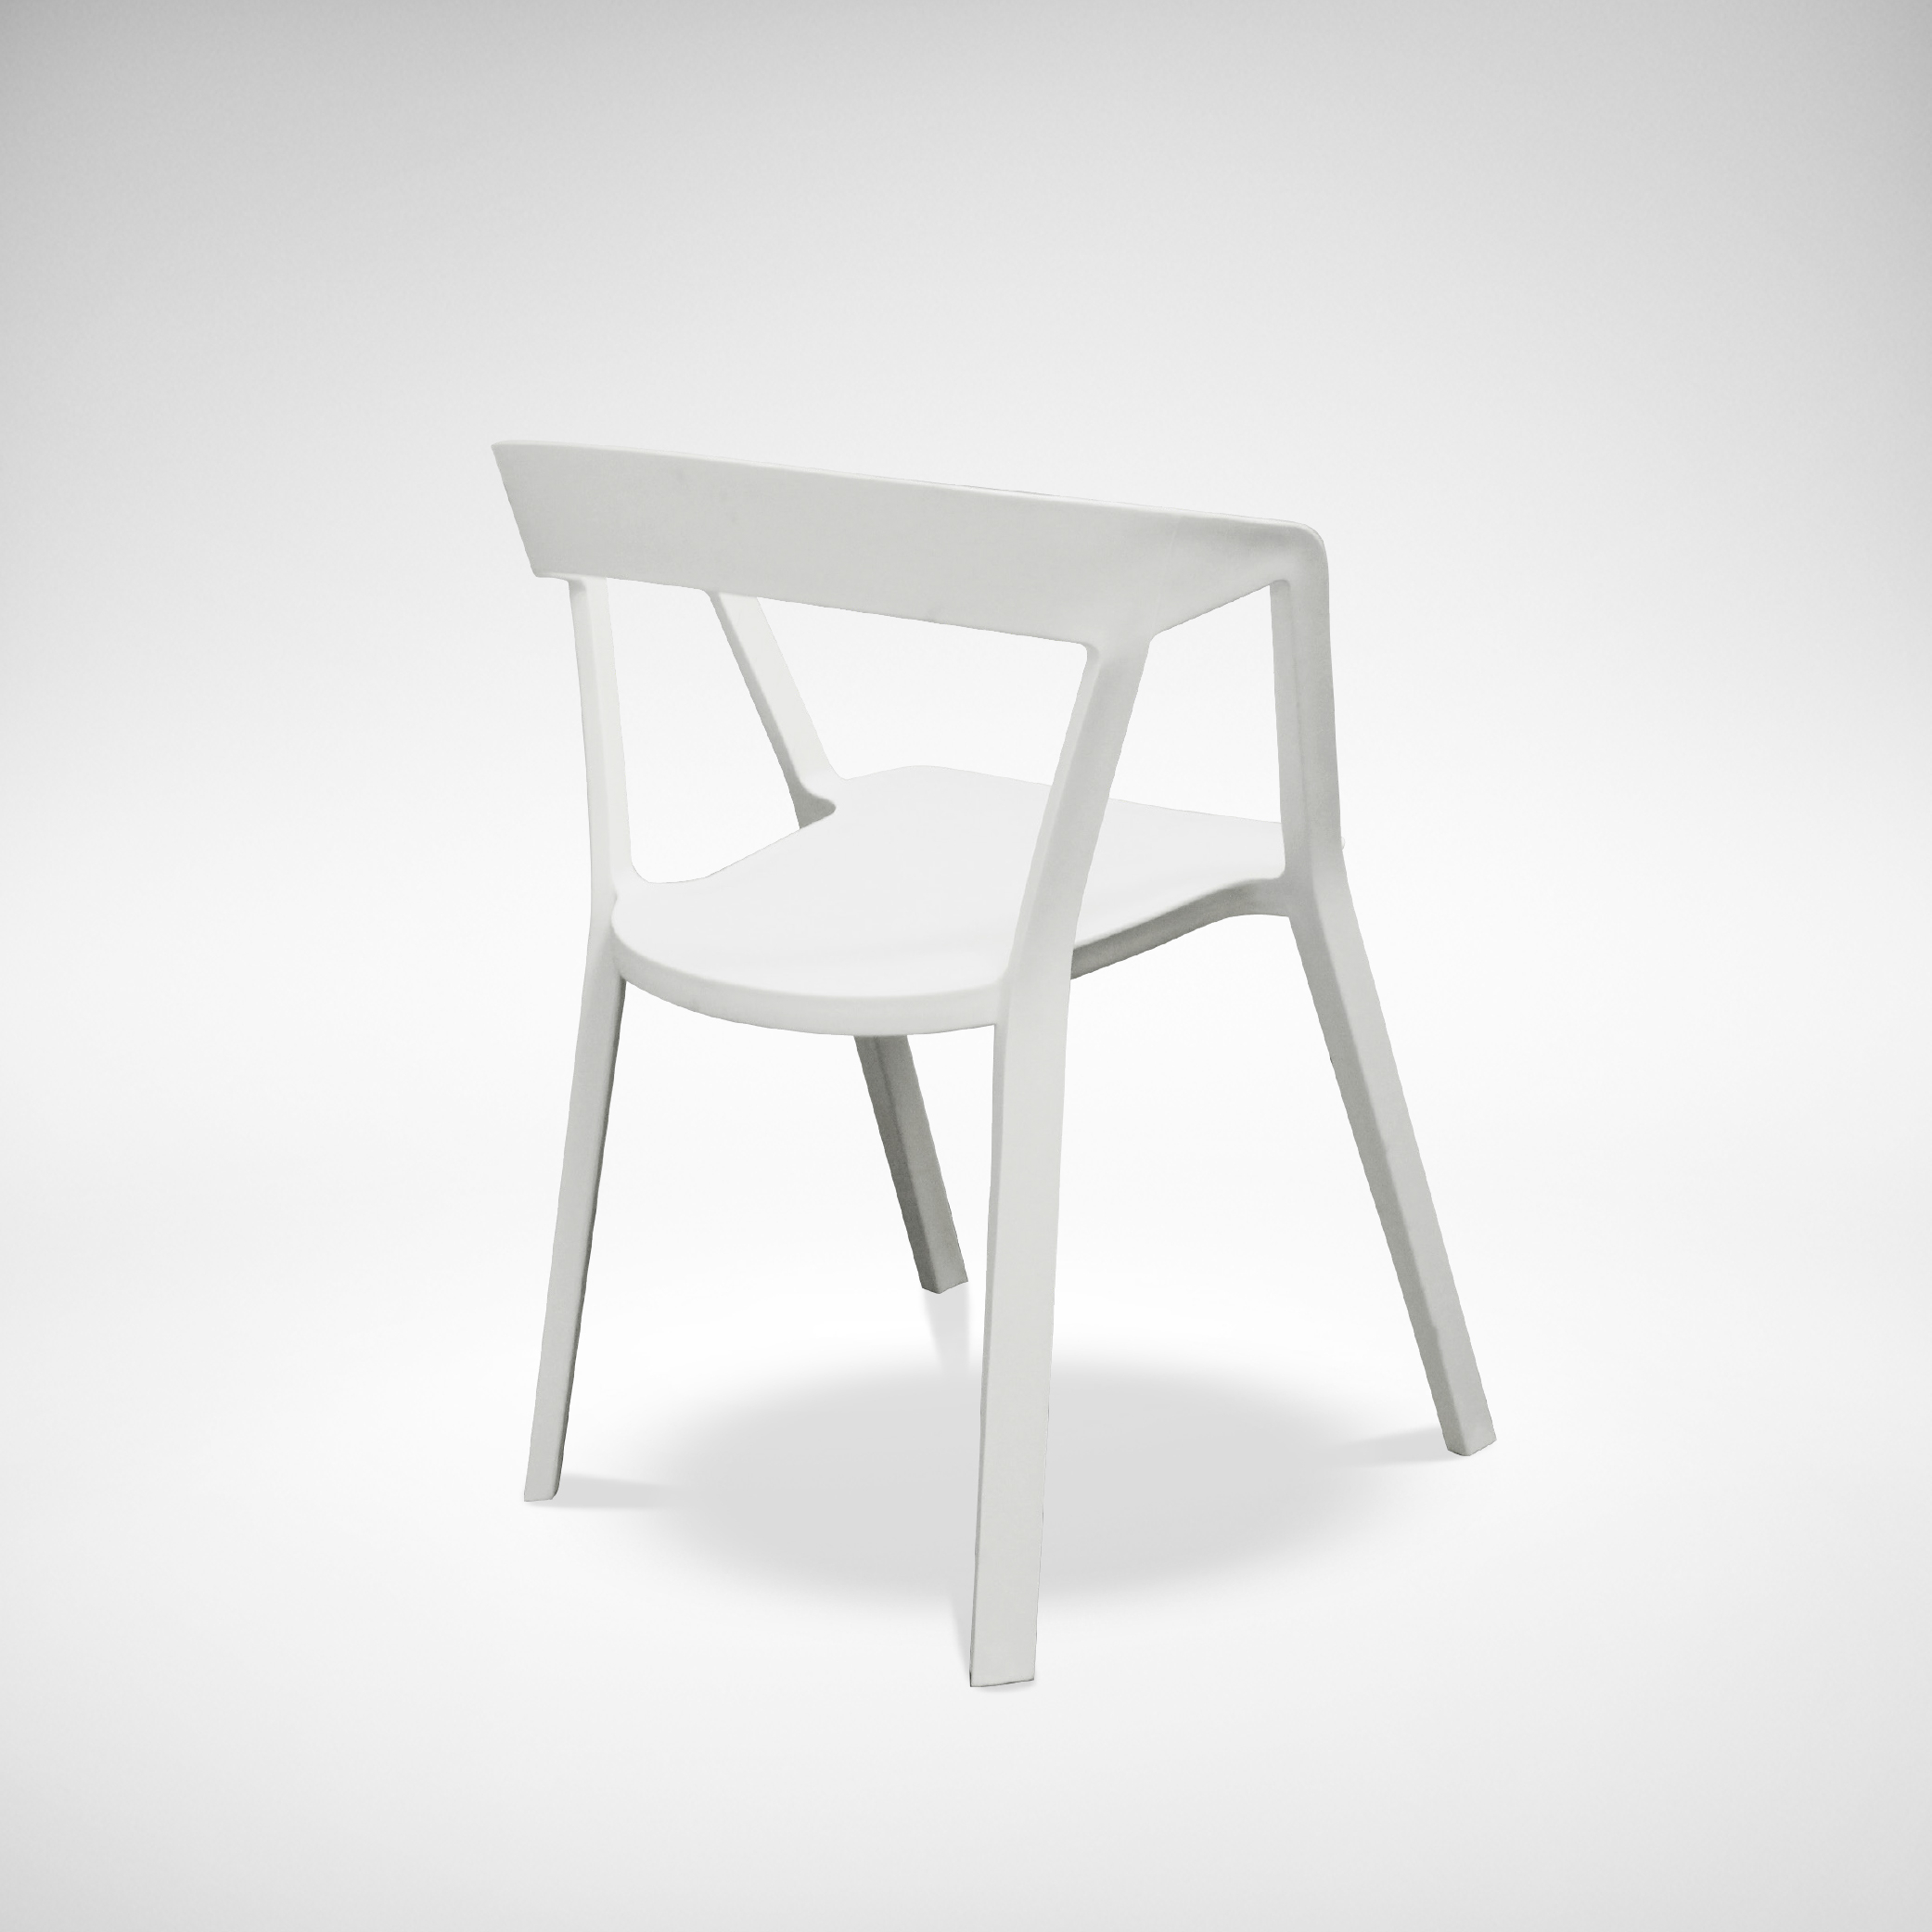 Mitchell Arm Chair | Comfort Design – The Chair & Table People Intended For Mitchell Arm Sofa Chairs (Image 10 of 20)